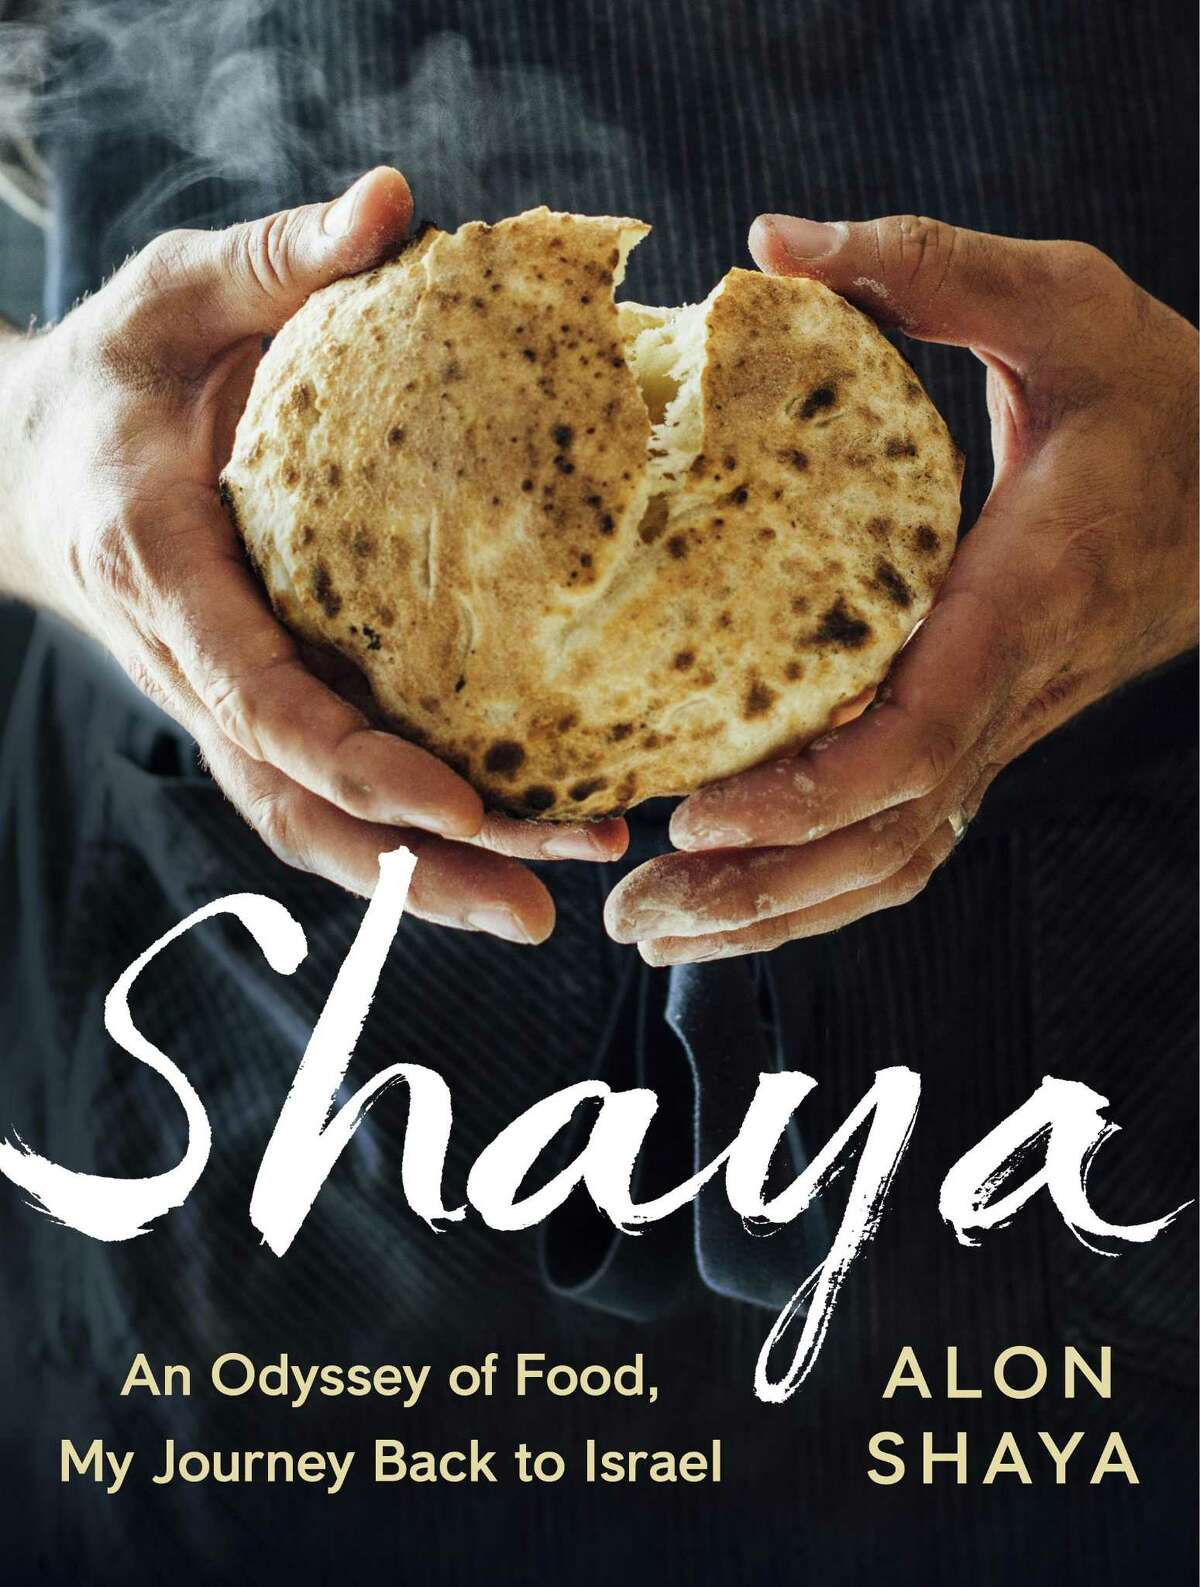 """""""Shaya: An Odyssey of Food, My Journey Back to Israel"""" by Alon Shaya (Alfred A. Knopf)"""